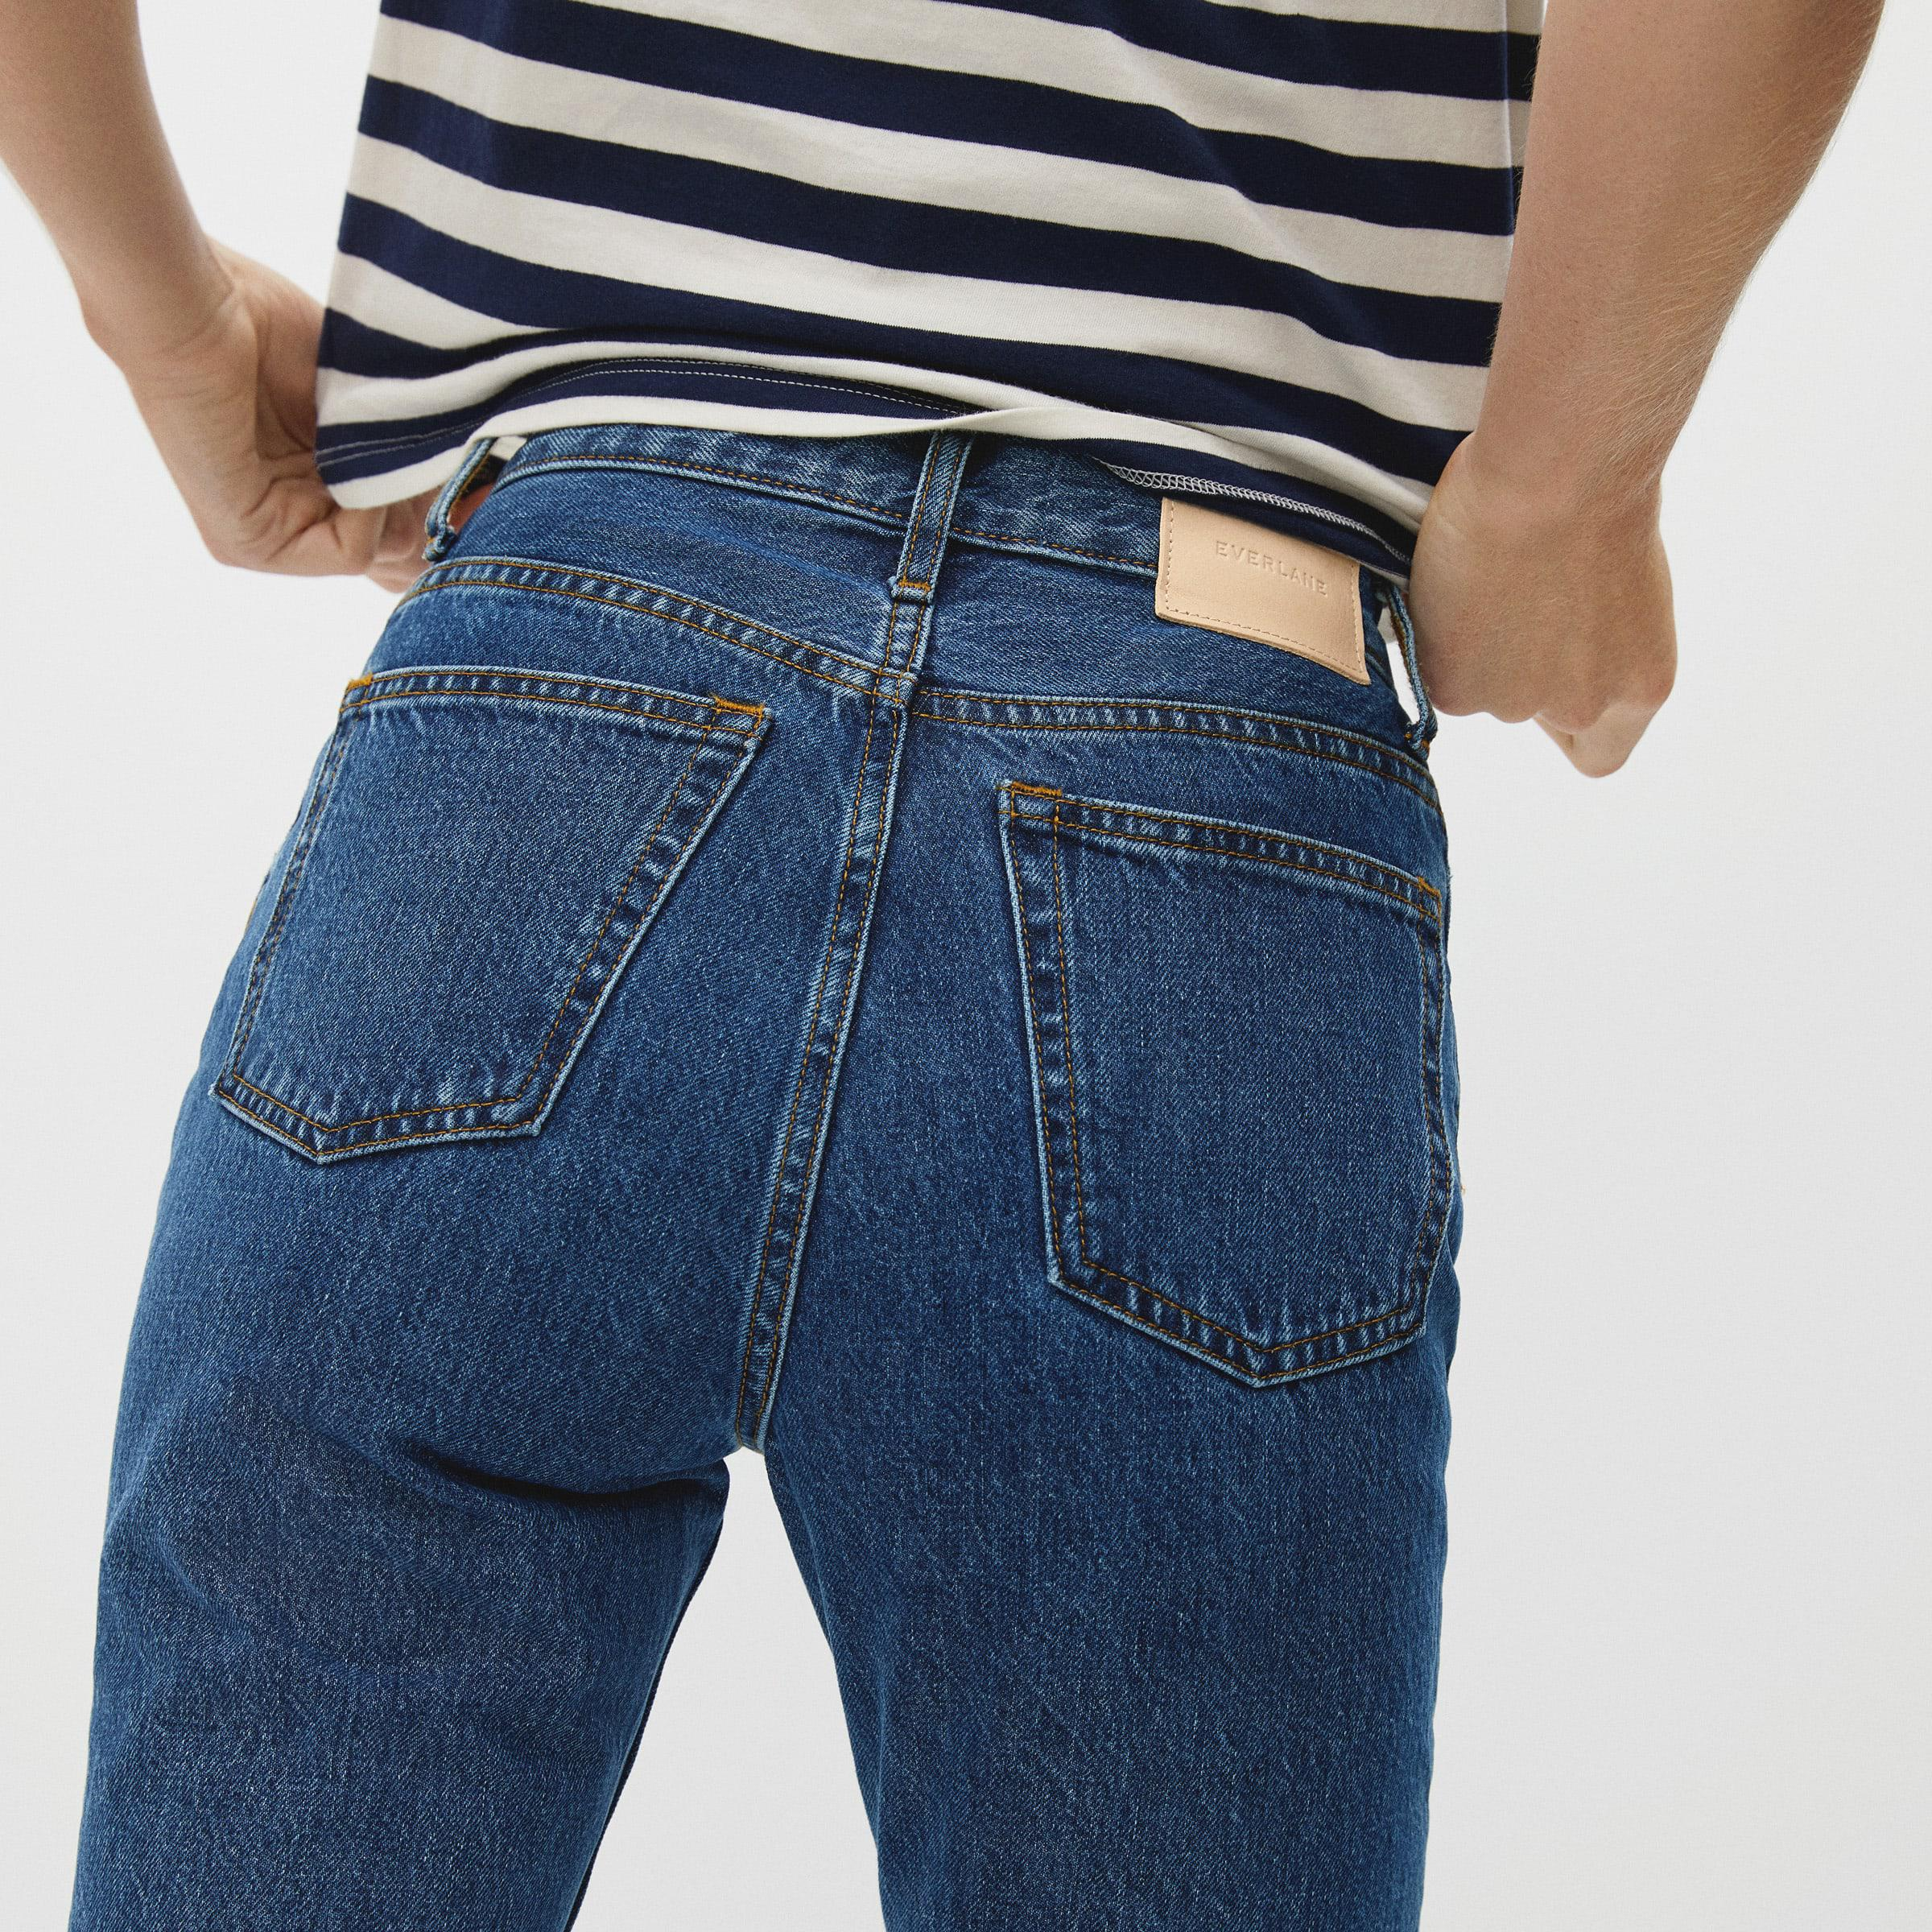 The '90s Cheeky Jean 3